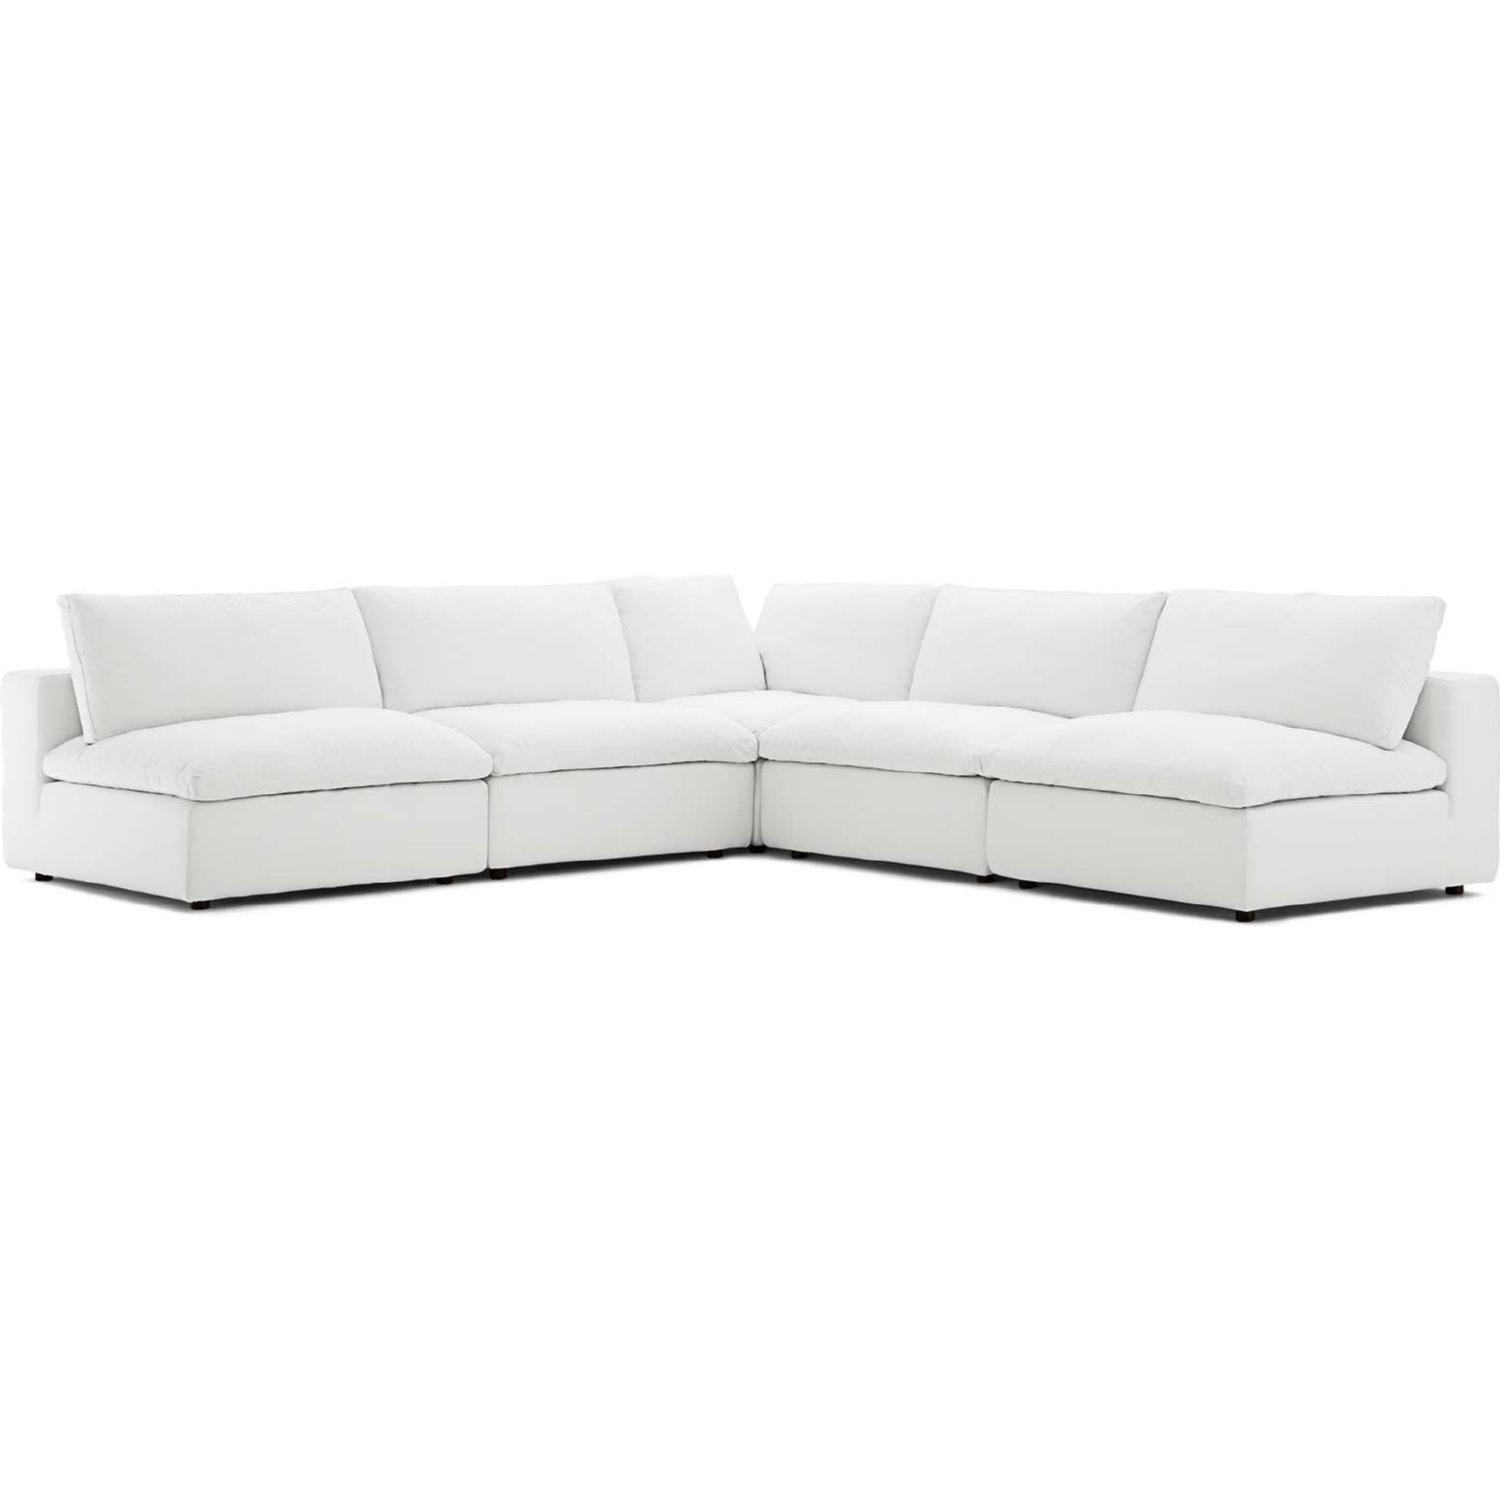 Pleasant Commix Down Overstuffed 5 Piece Modular Sectional Sofa In White Fabric By Modway Ibusinesslaw Wood Chair Design Ideas Ibusinesslaworg